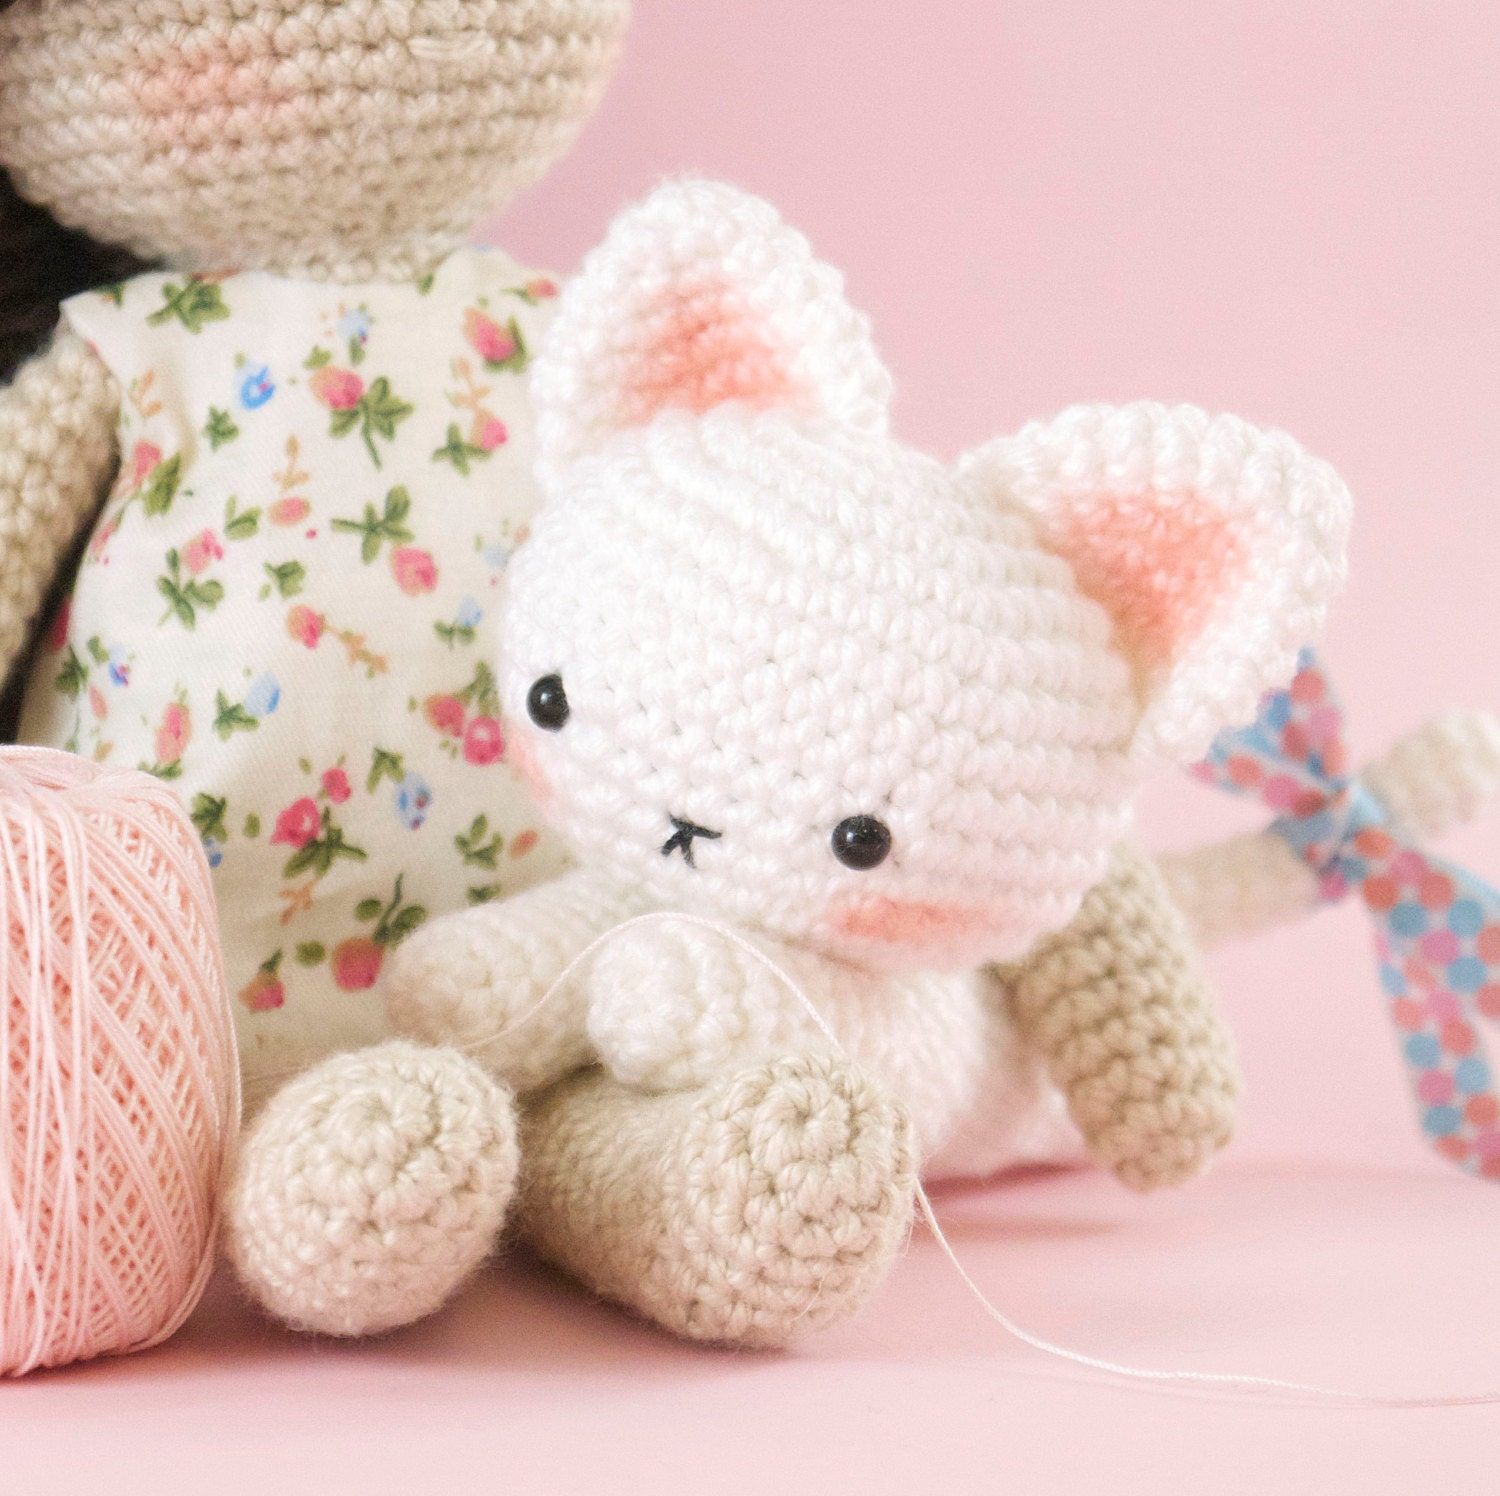 Amigurumi crochet cat PATTERN ONLY (English) - Zeppy.io